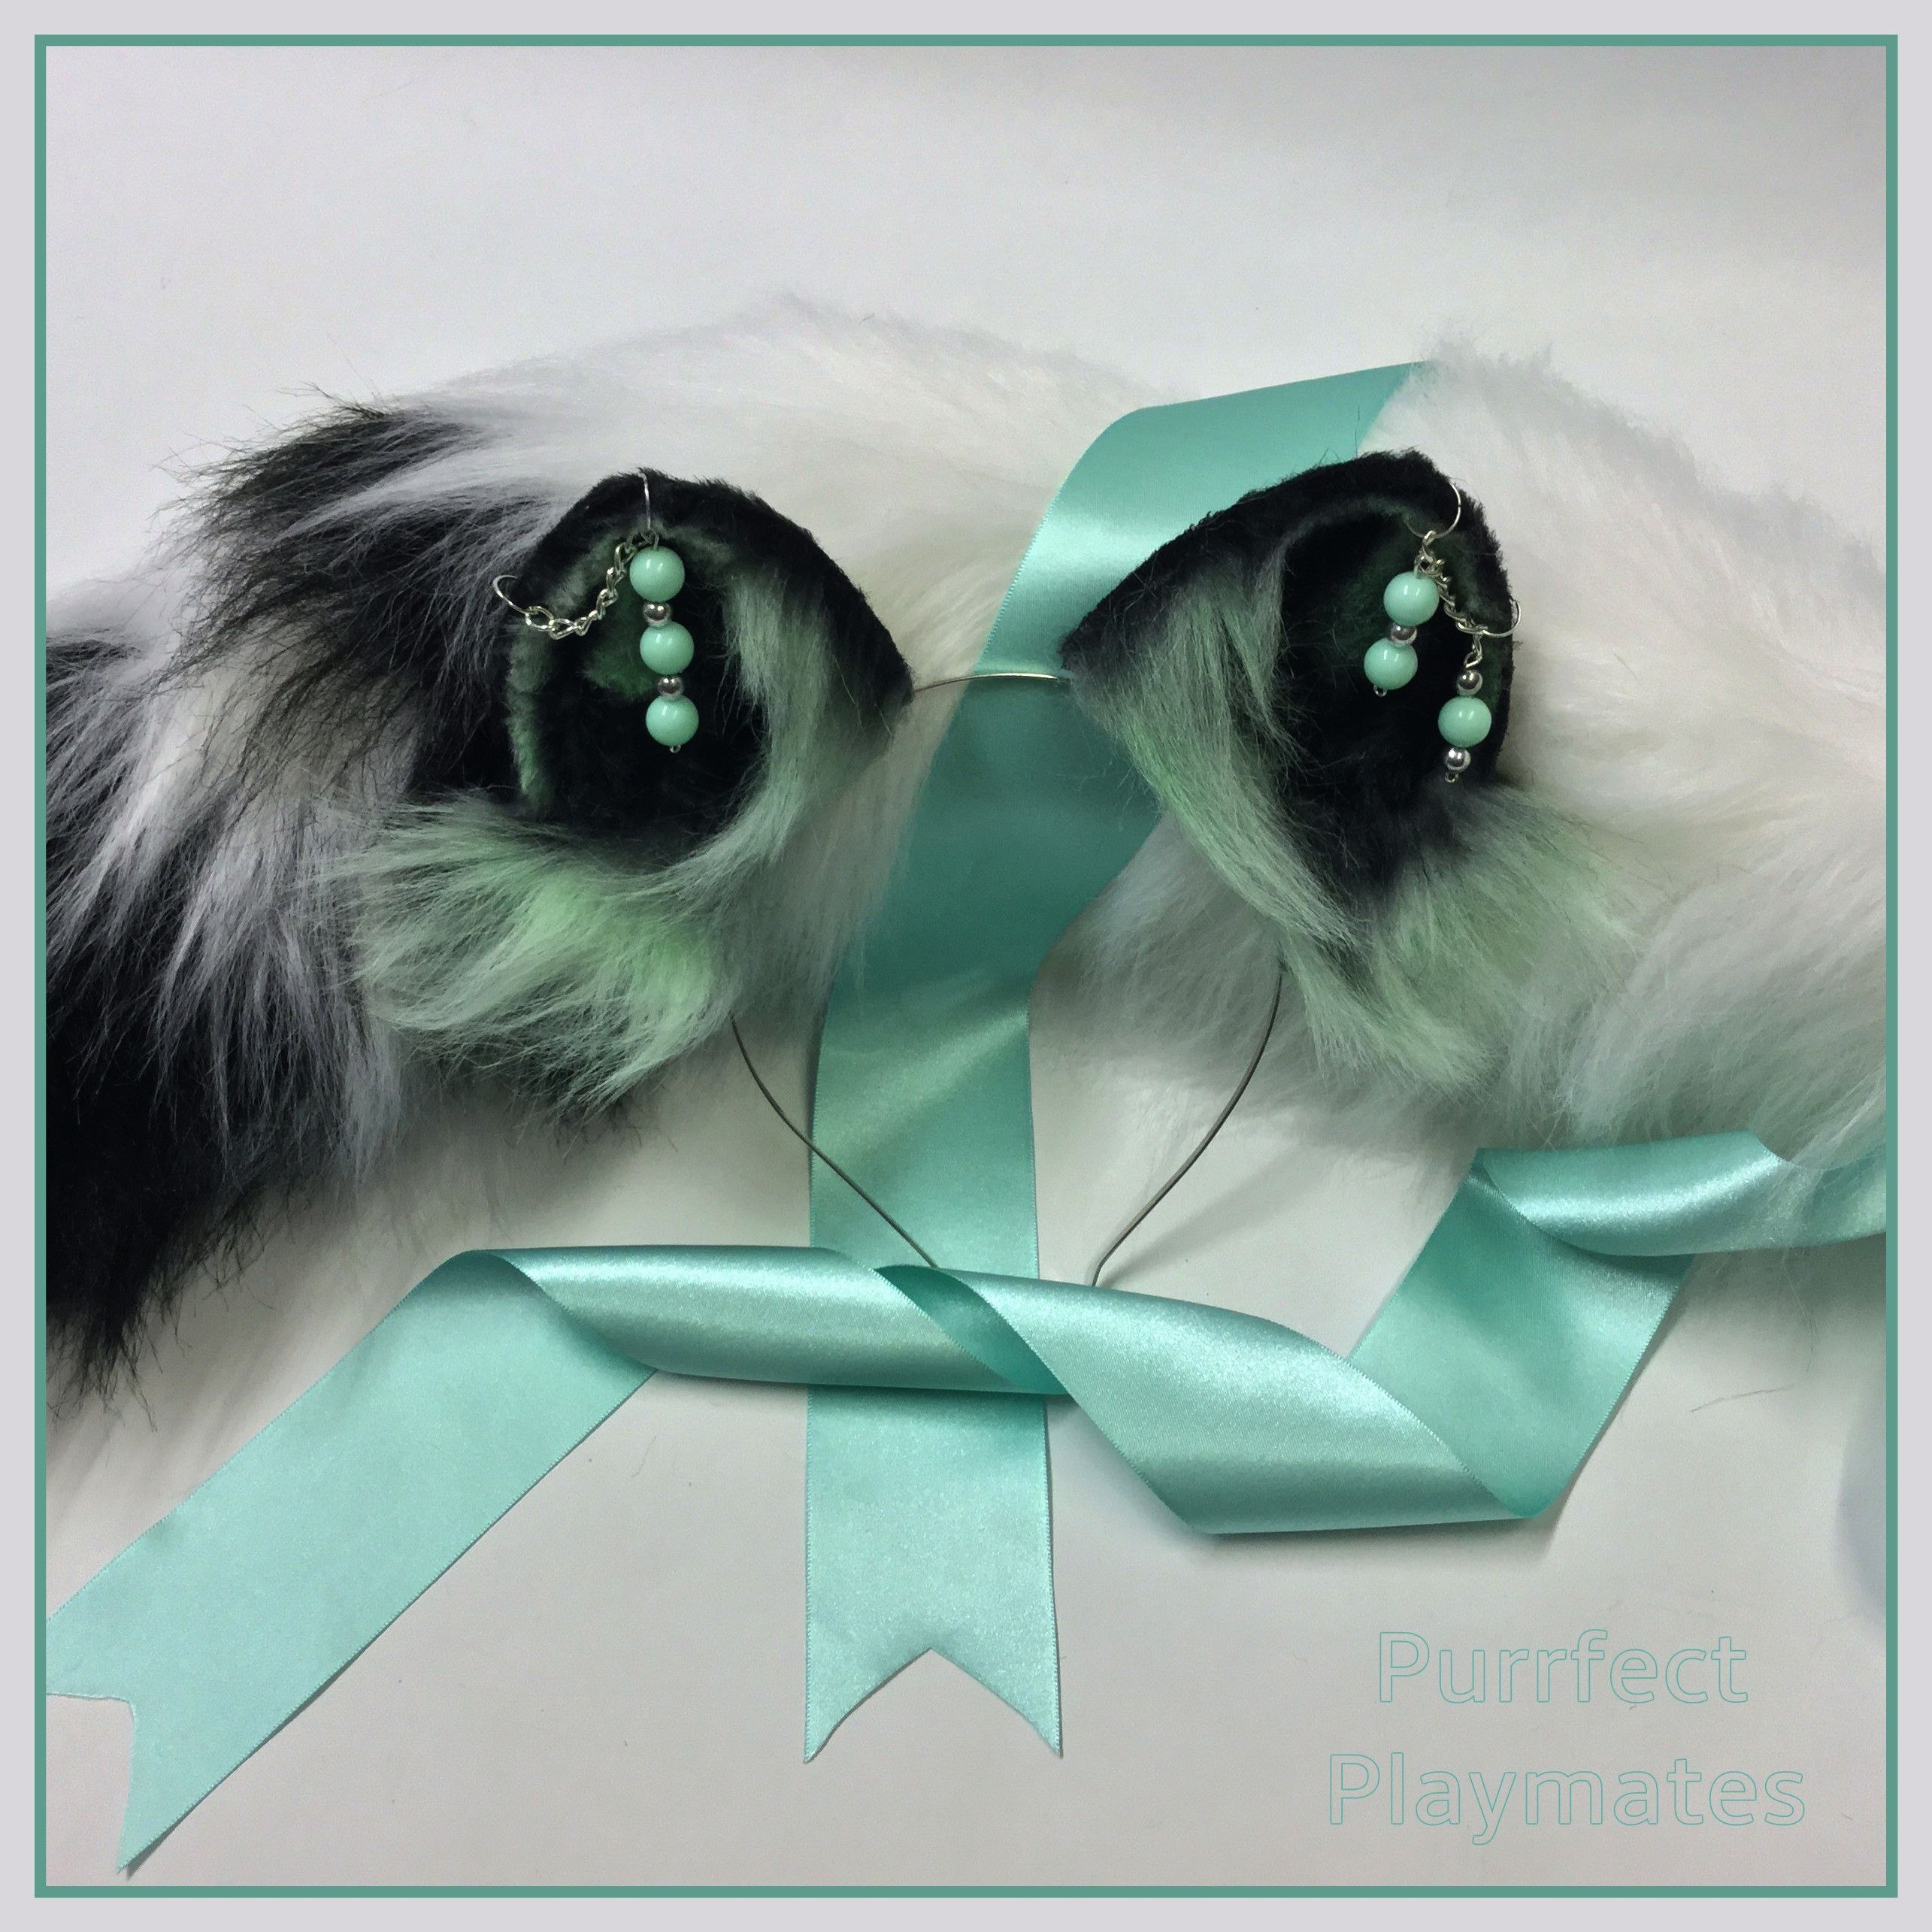 purrfectplaymates air brushed kitten play ears with